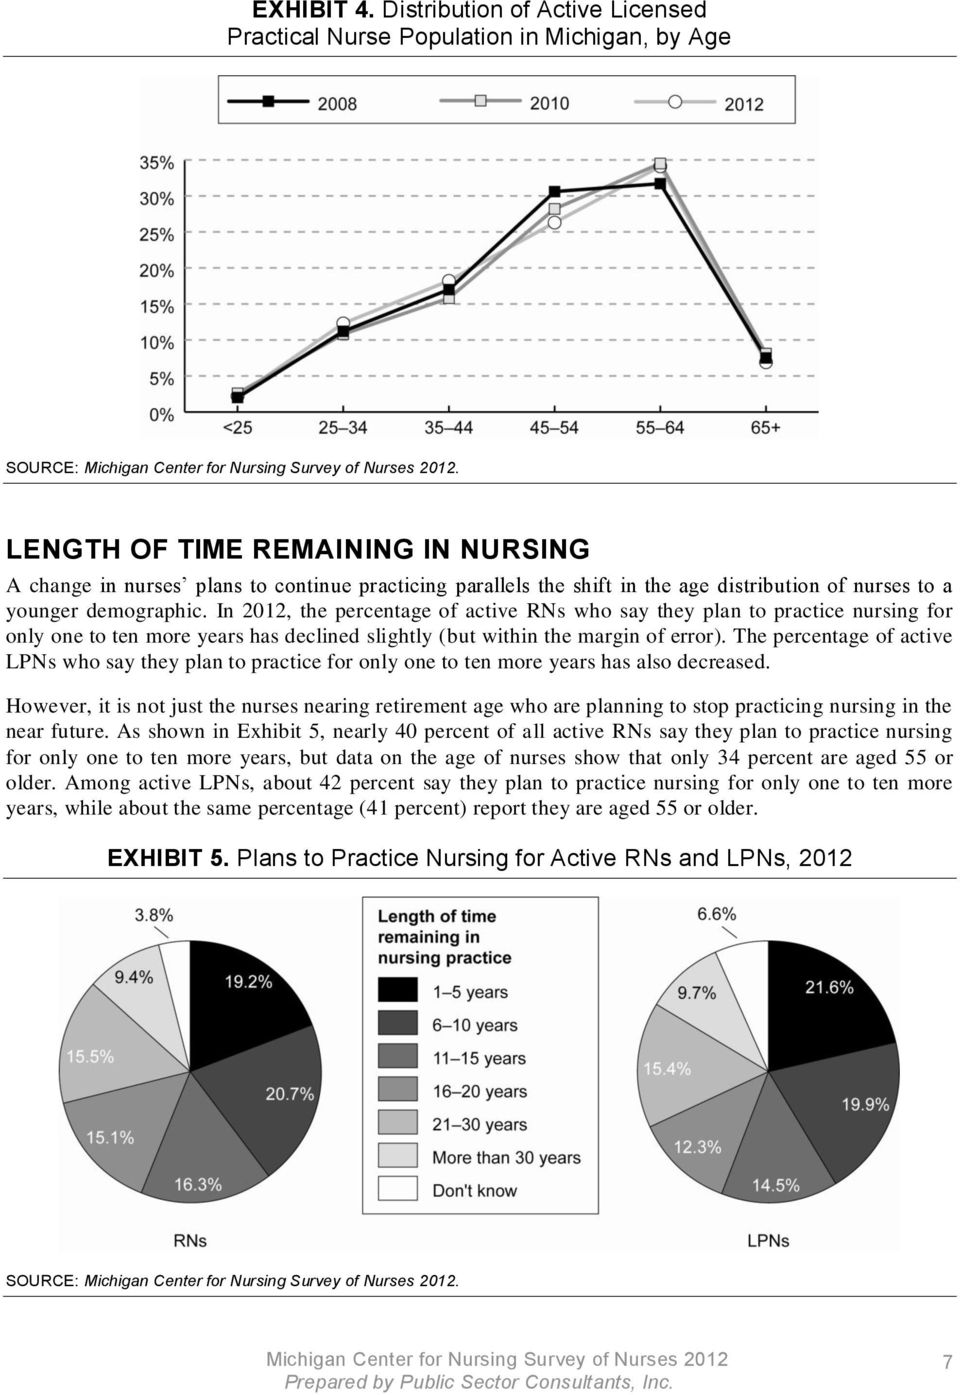 In 2012, the percentage of active RNs who say they plan to practice nursing for only one to ten more years has declined slightly (but within the margin of error).